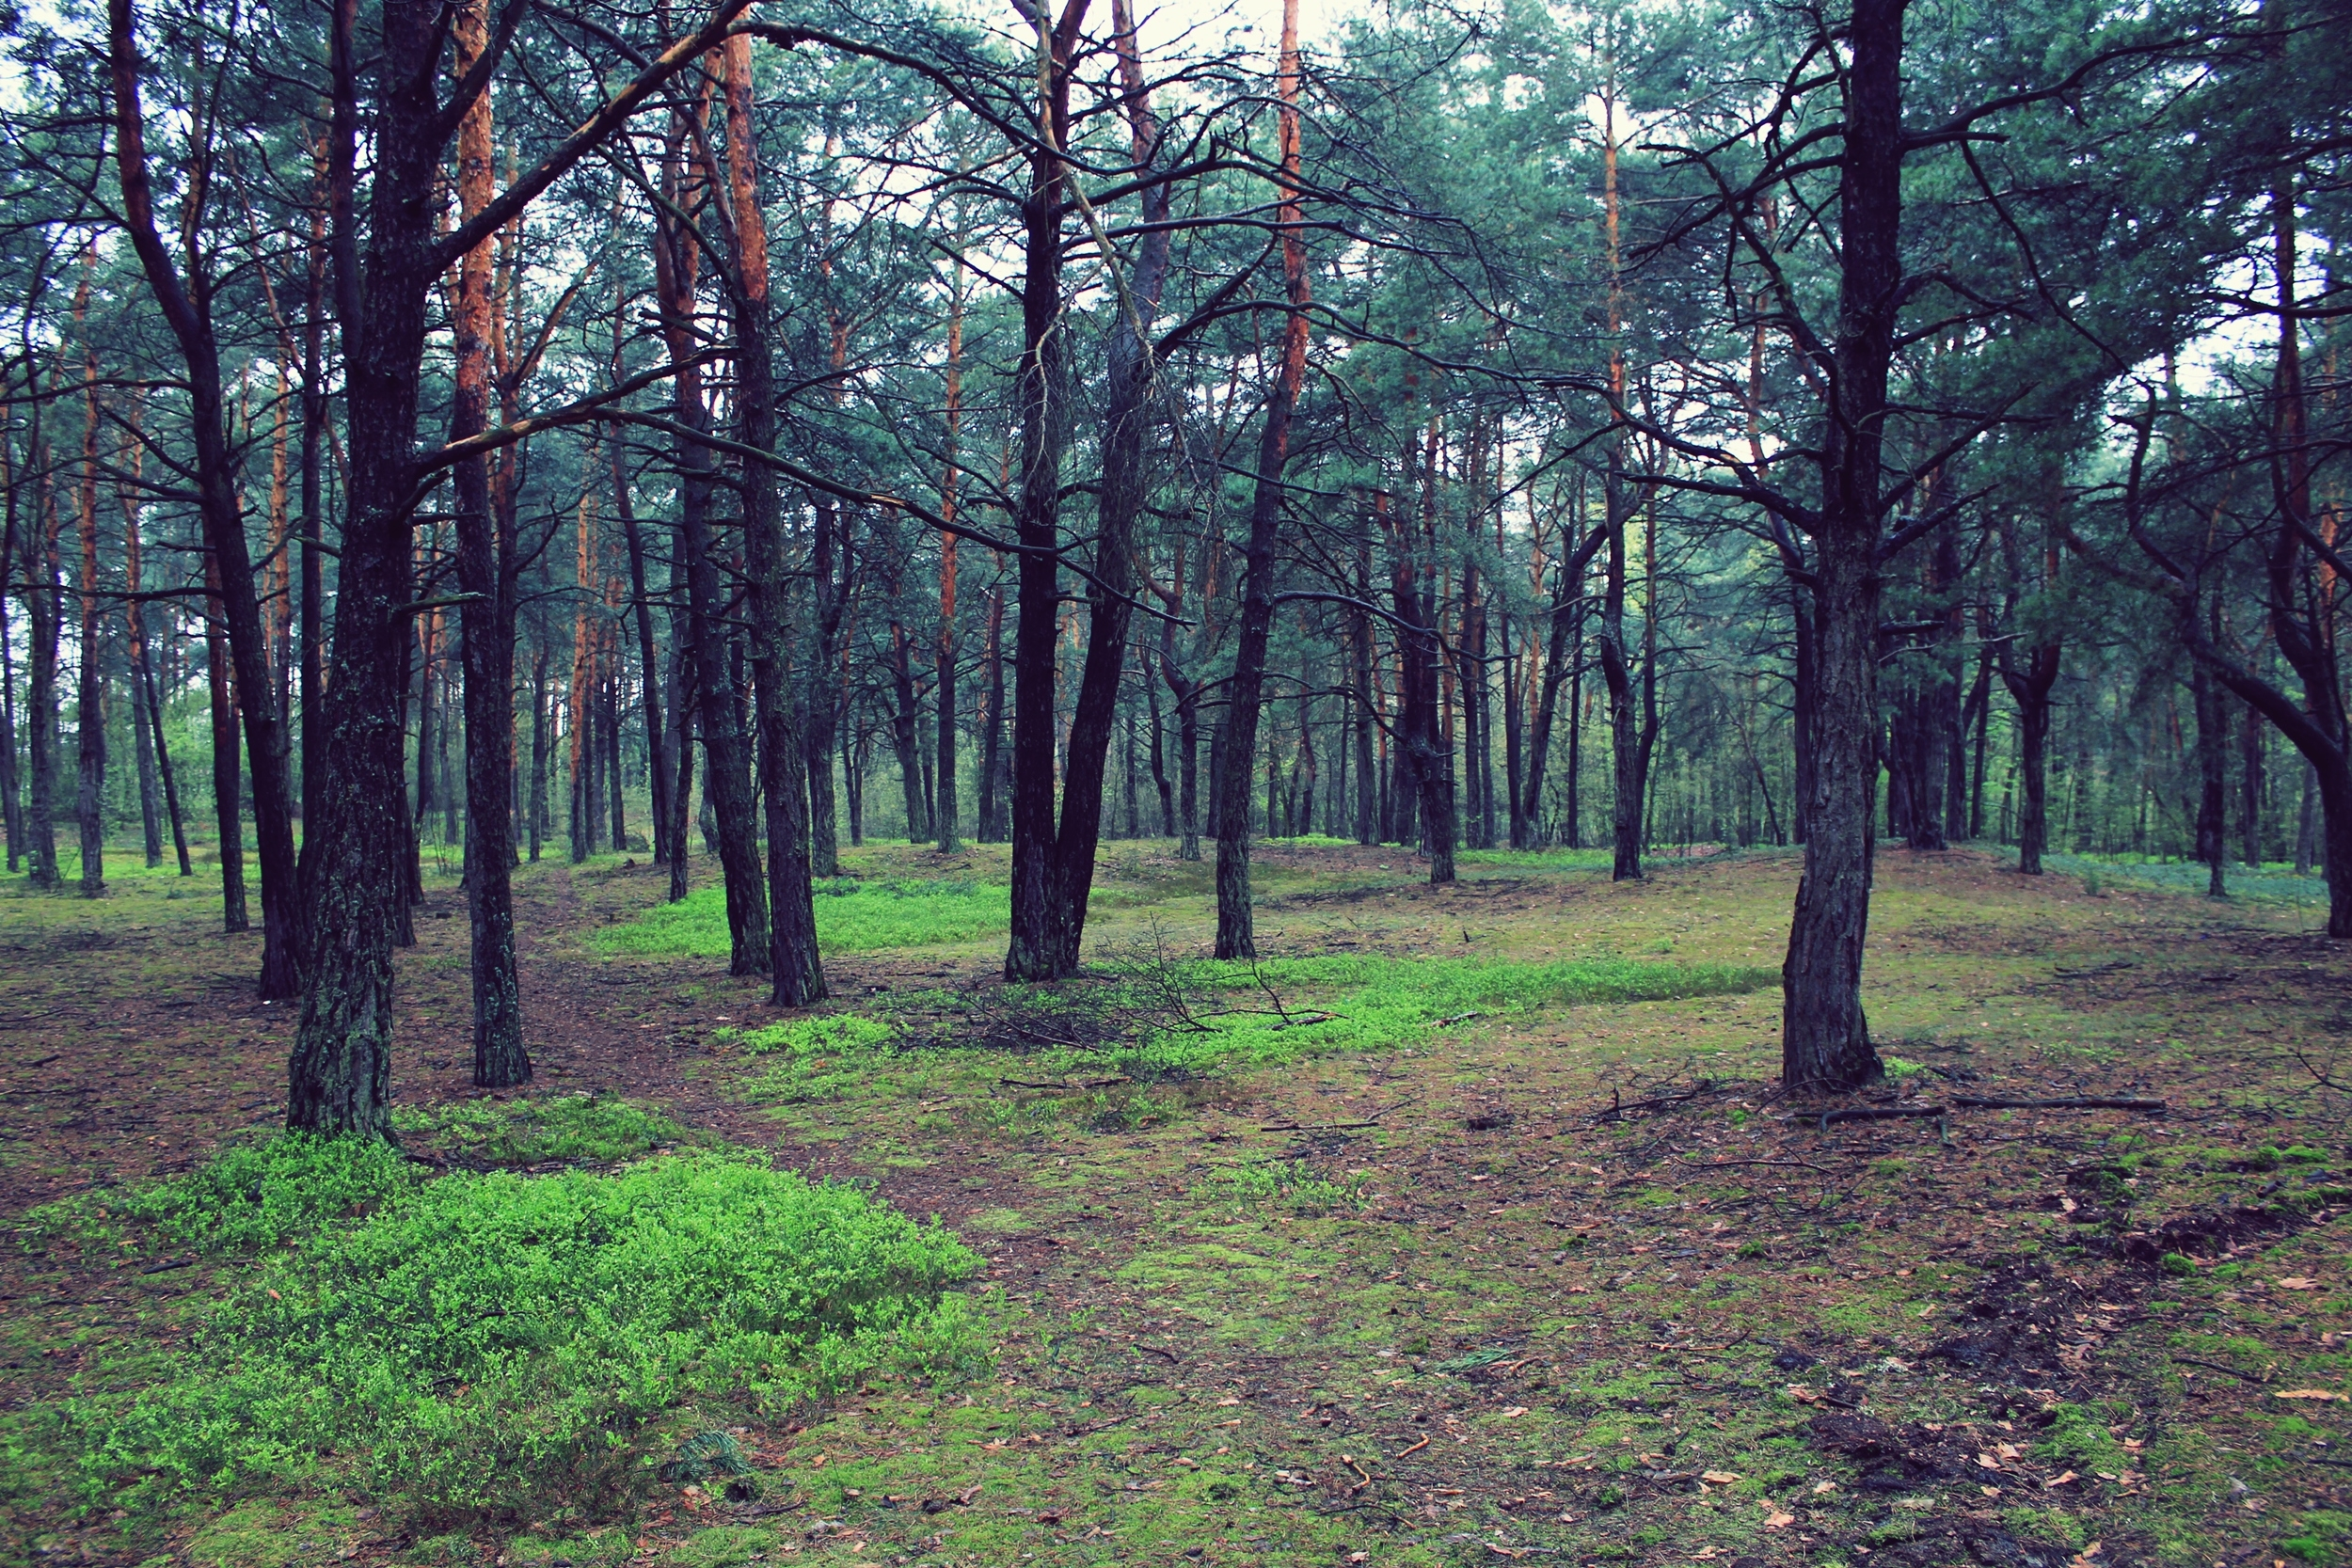 139374 download wallpaper Forest, Trees, Nature, Landscape screensavers and pictures for free